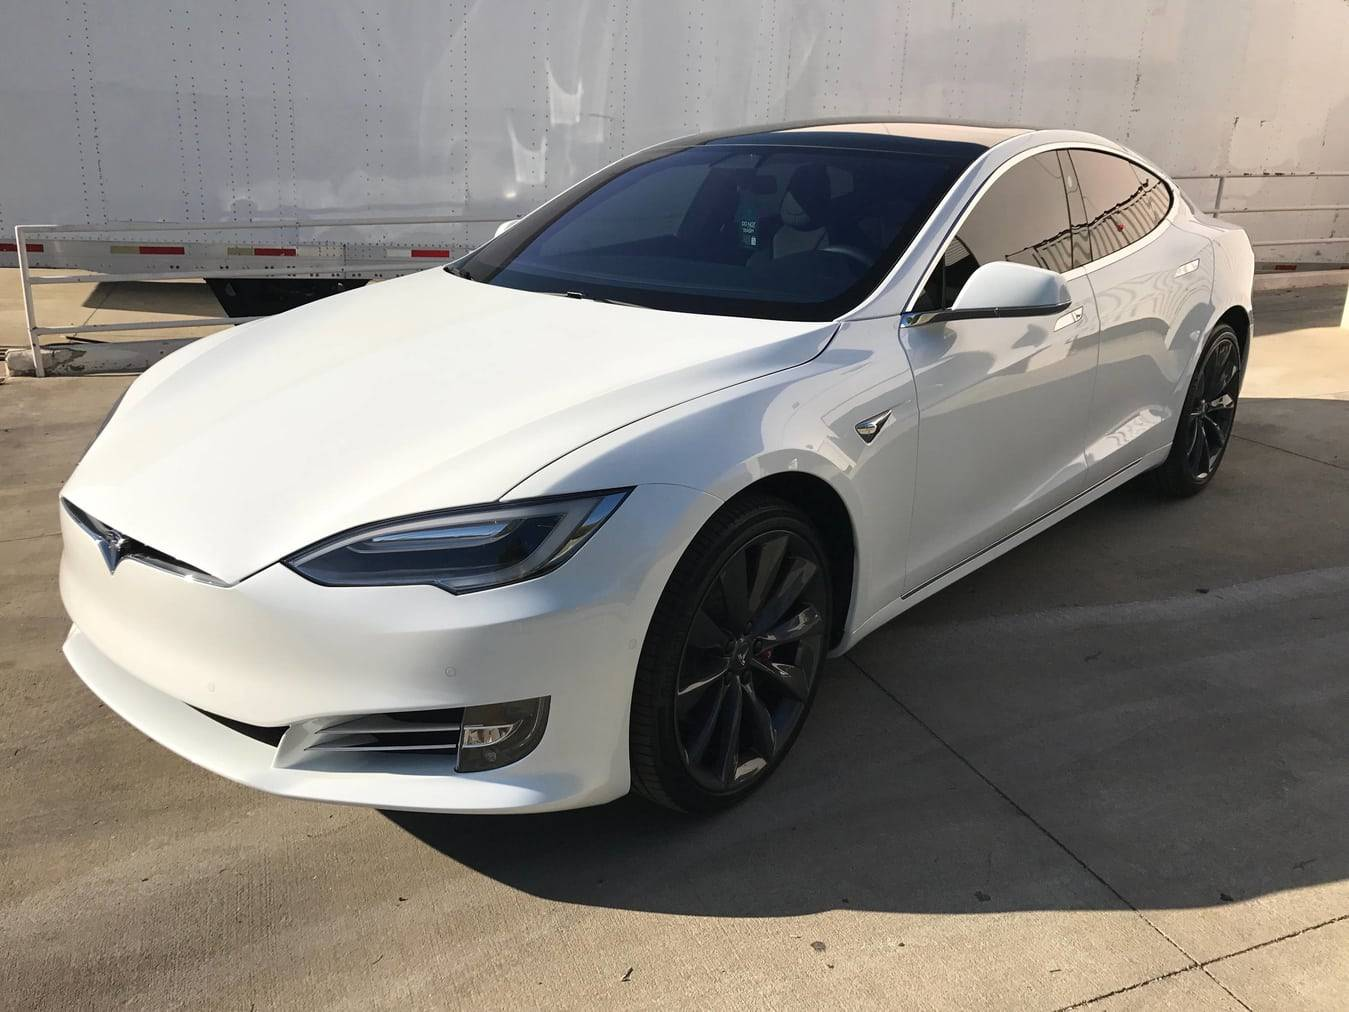 Opti-Coat Pro Plus on a white Tesla Model S - Autoskinz